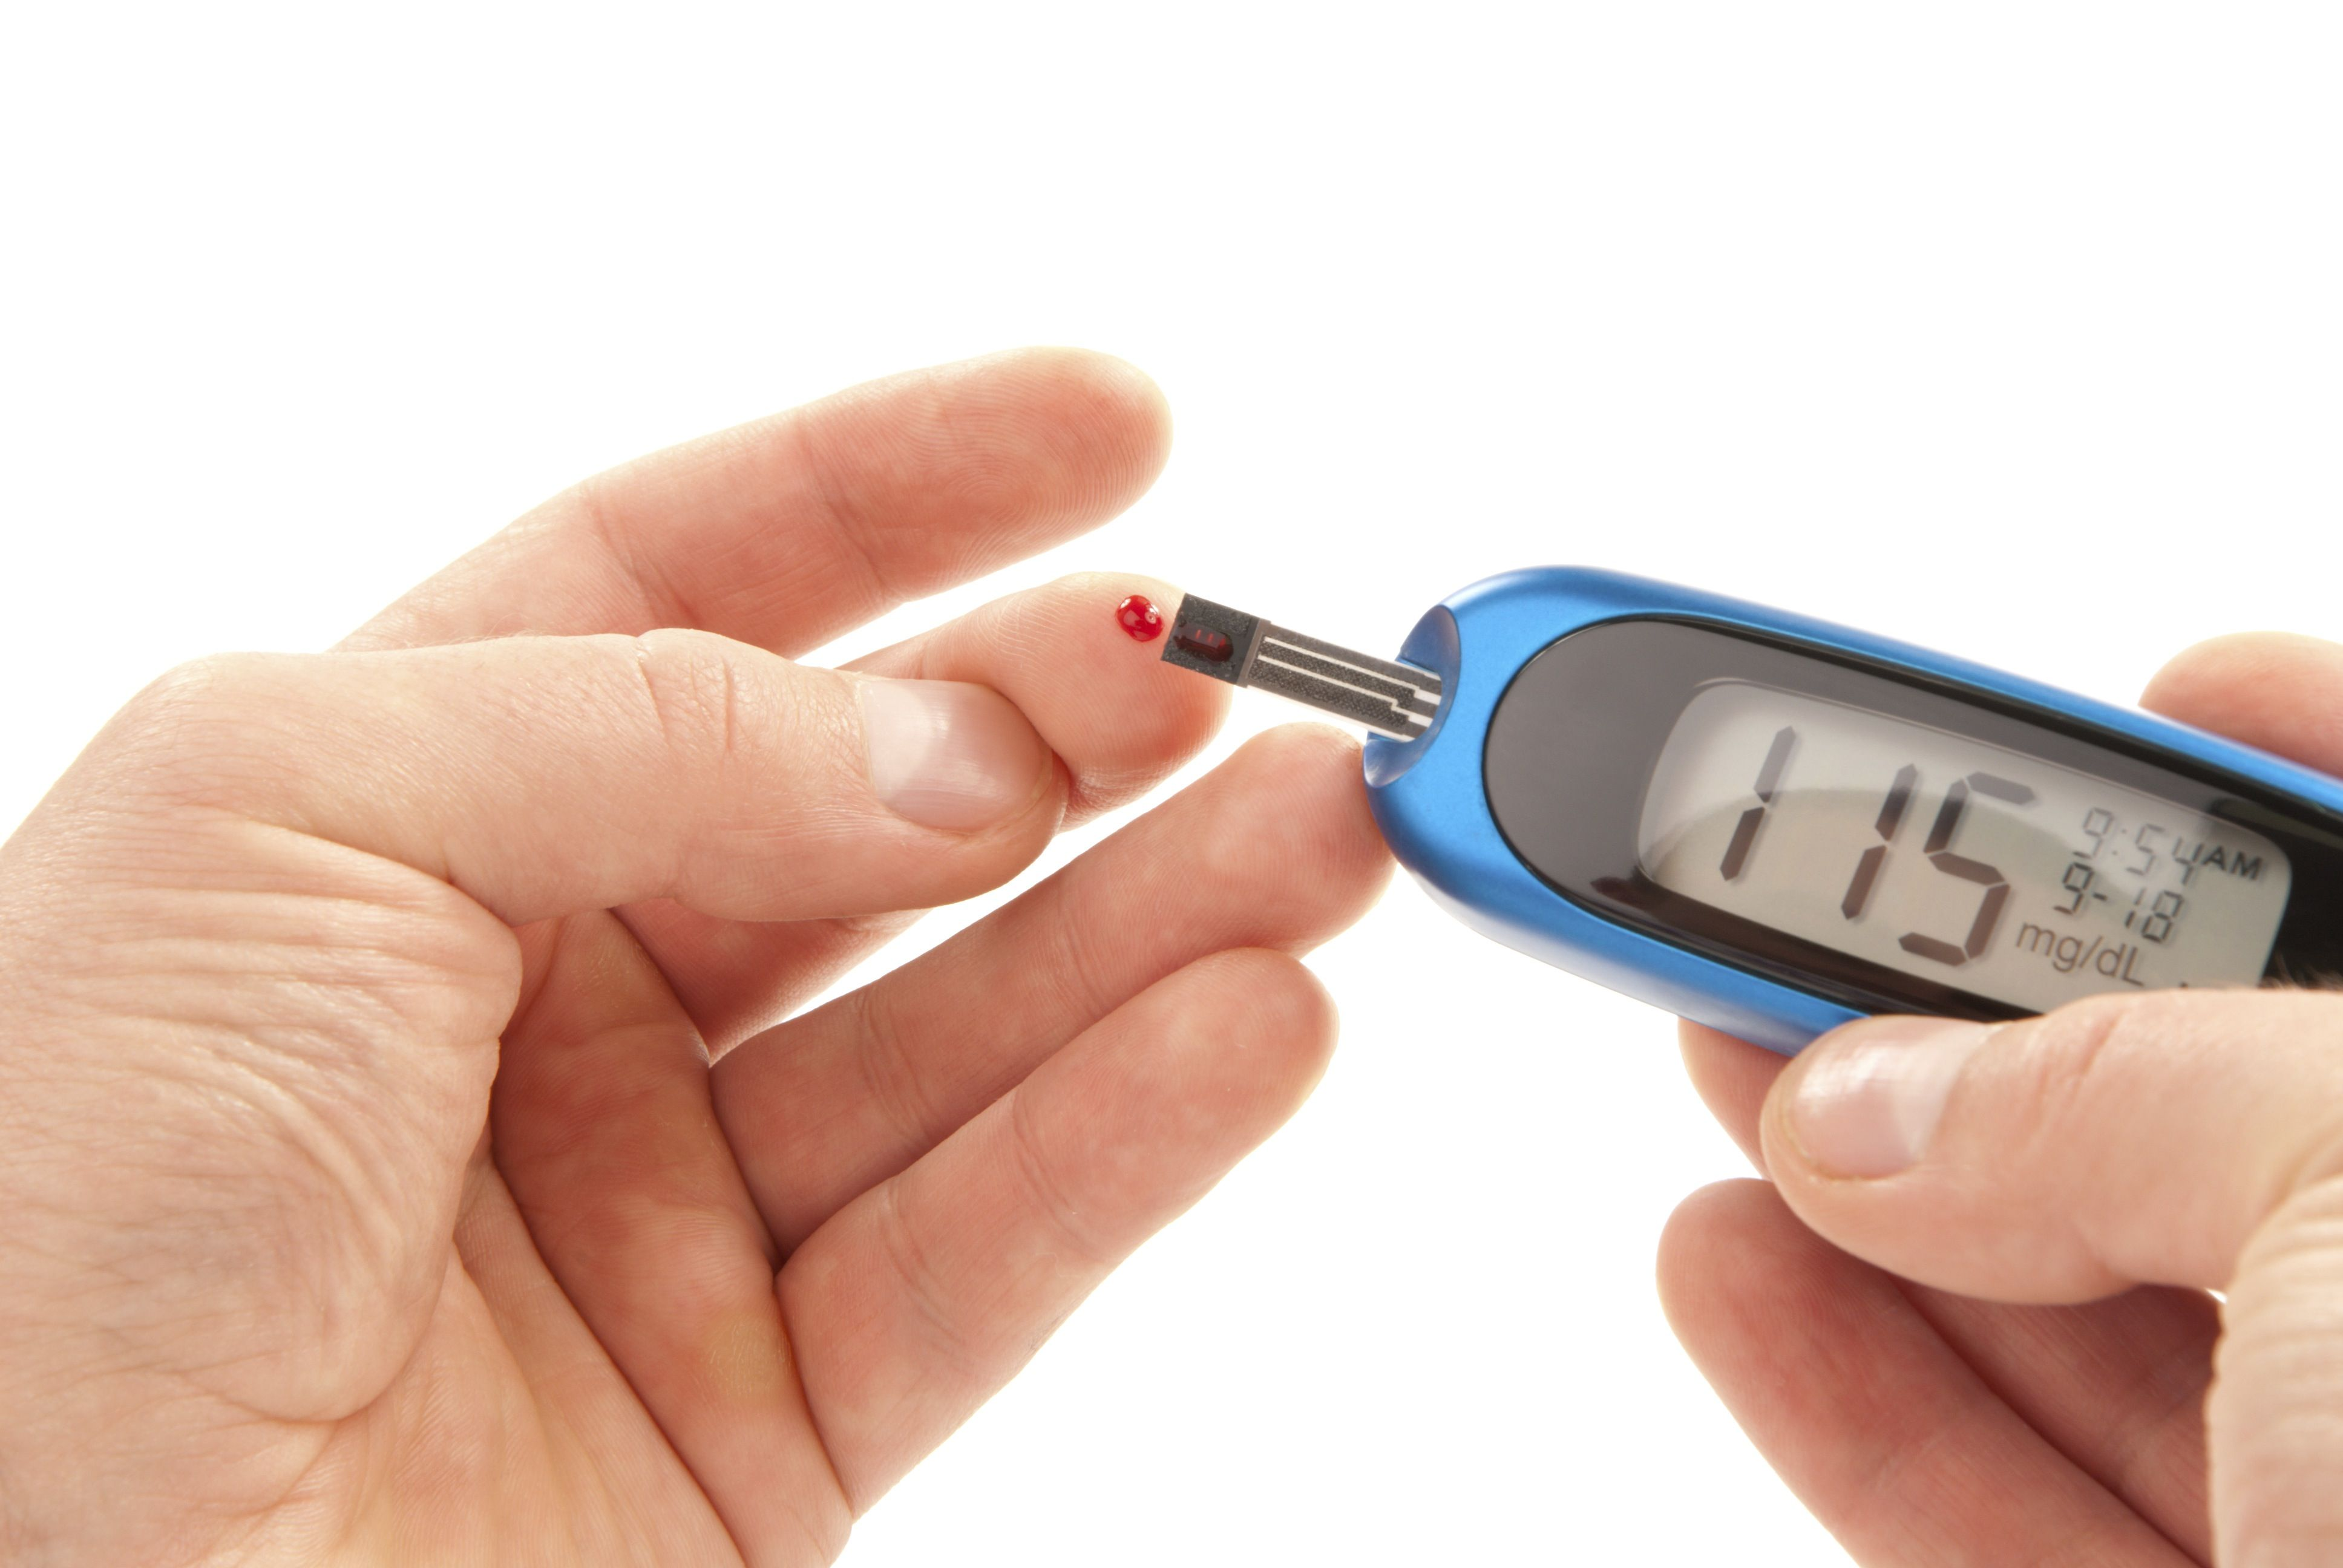 There are 4 kinds of symptoms in the body, it is diabetes close, learn 3 strokes of blood sugar steady down